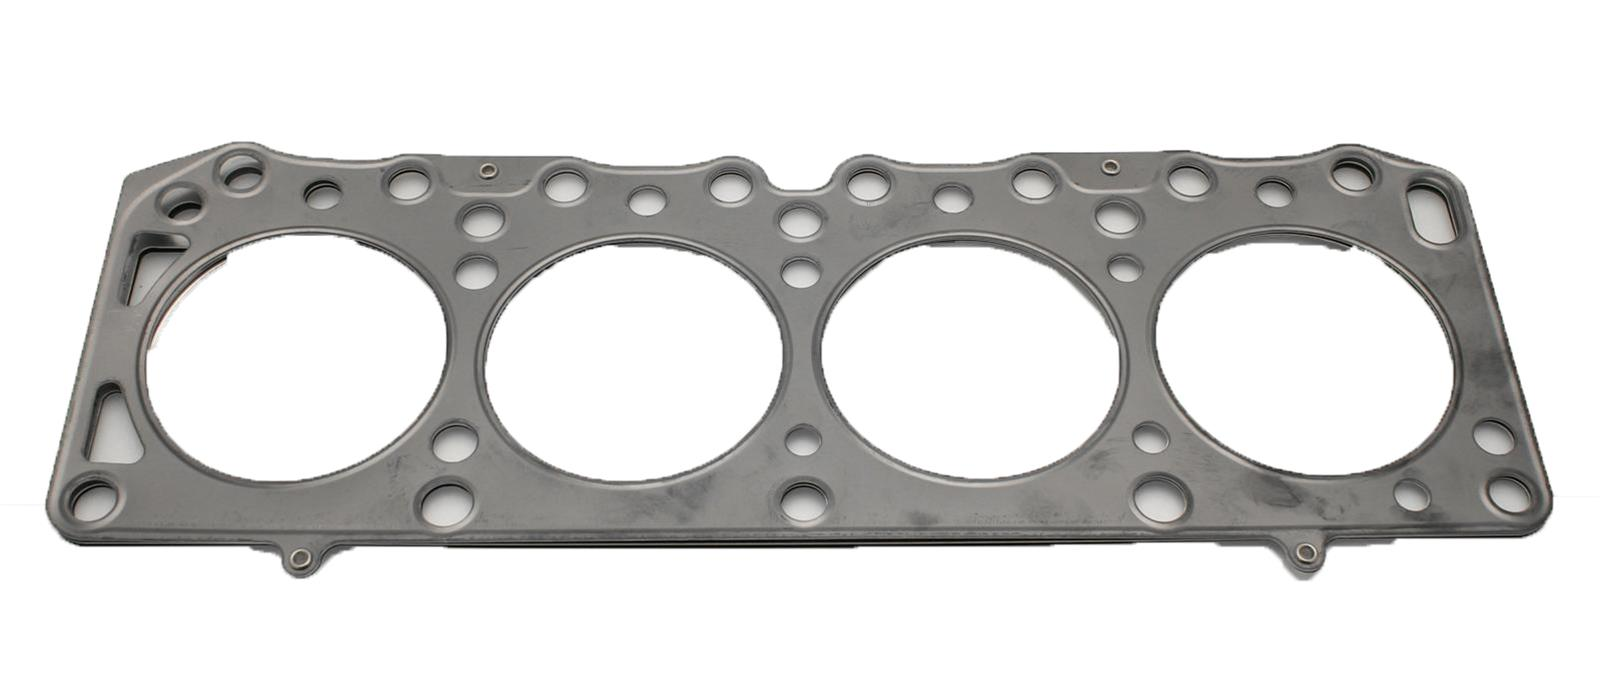 """Cometic Cylinder Head Gasket C5399-051; MLS Stainless .051/"""" 4.030/"""" for Chevy"""